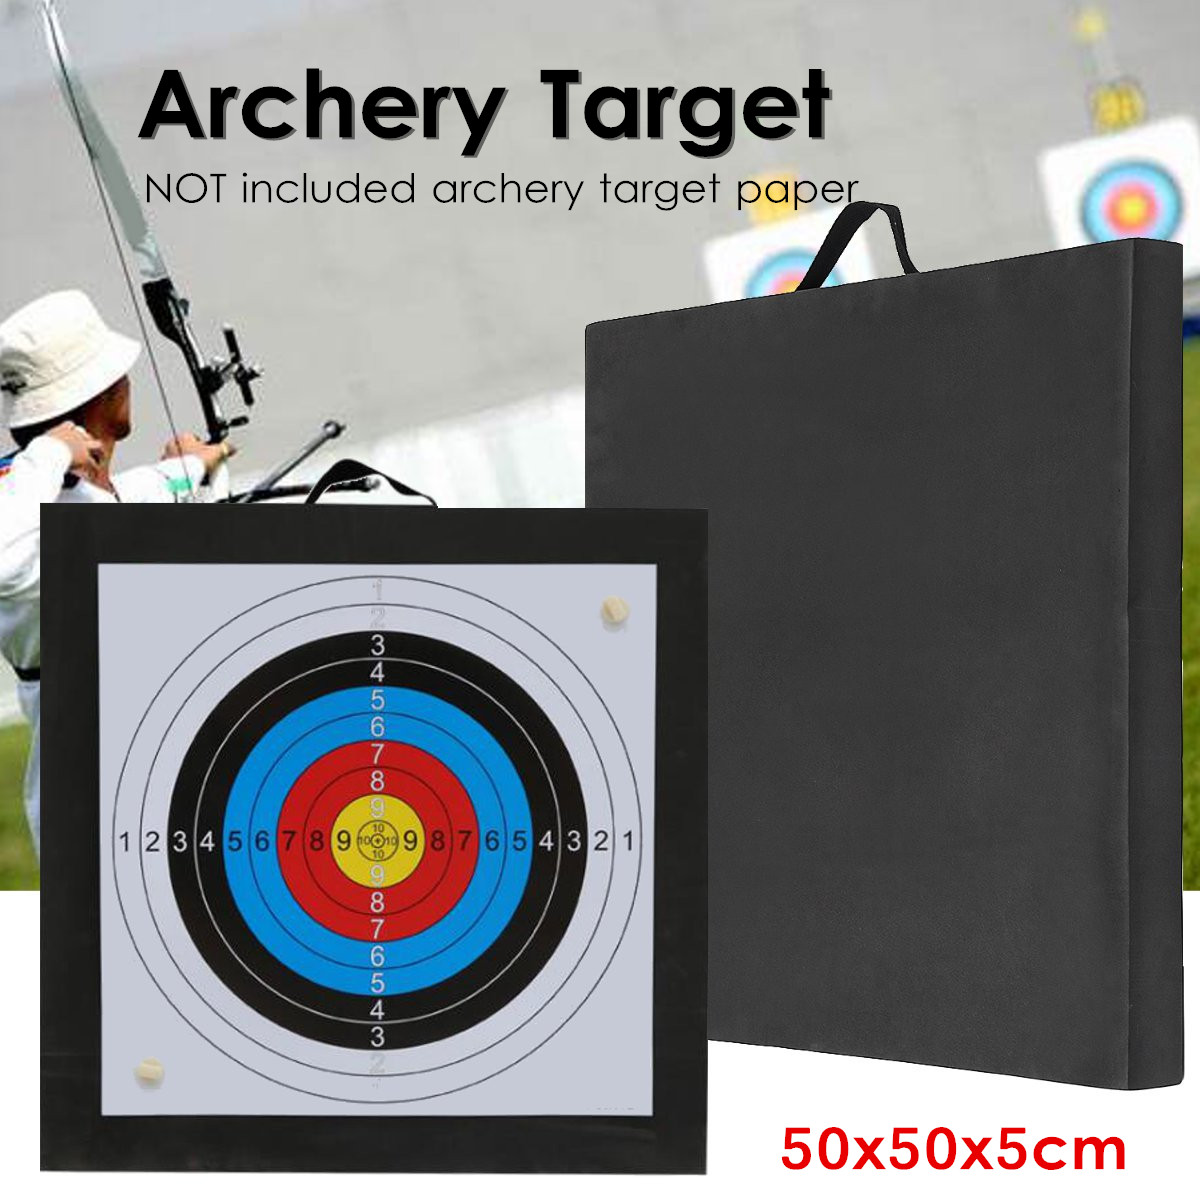 Y Target High Density EVA Foam Shooting Practice Board Outdoor Sport Hunting Accessories RecurveCrossbow 50x50x5cm Black